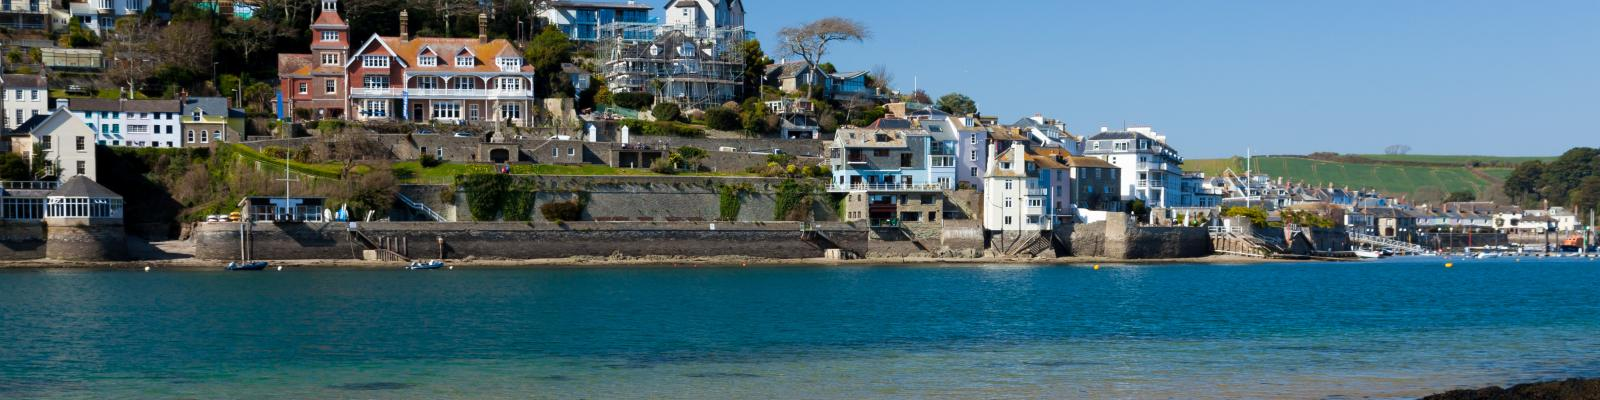 Self Catering Holiday Cottages In Salcombe Devon